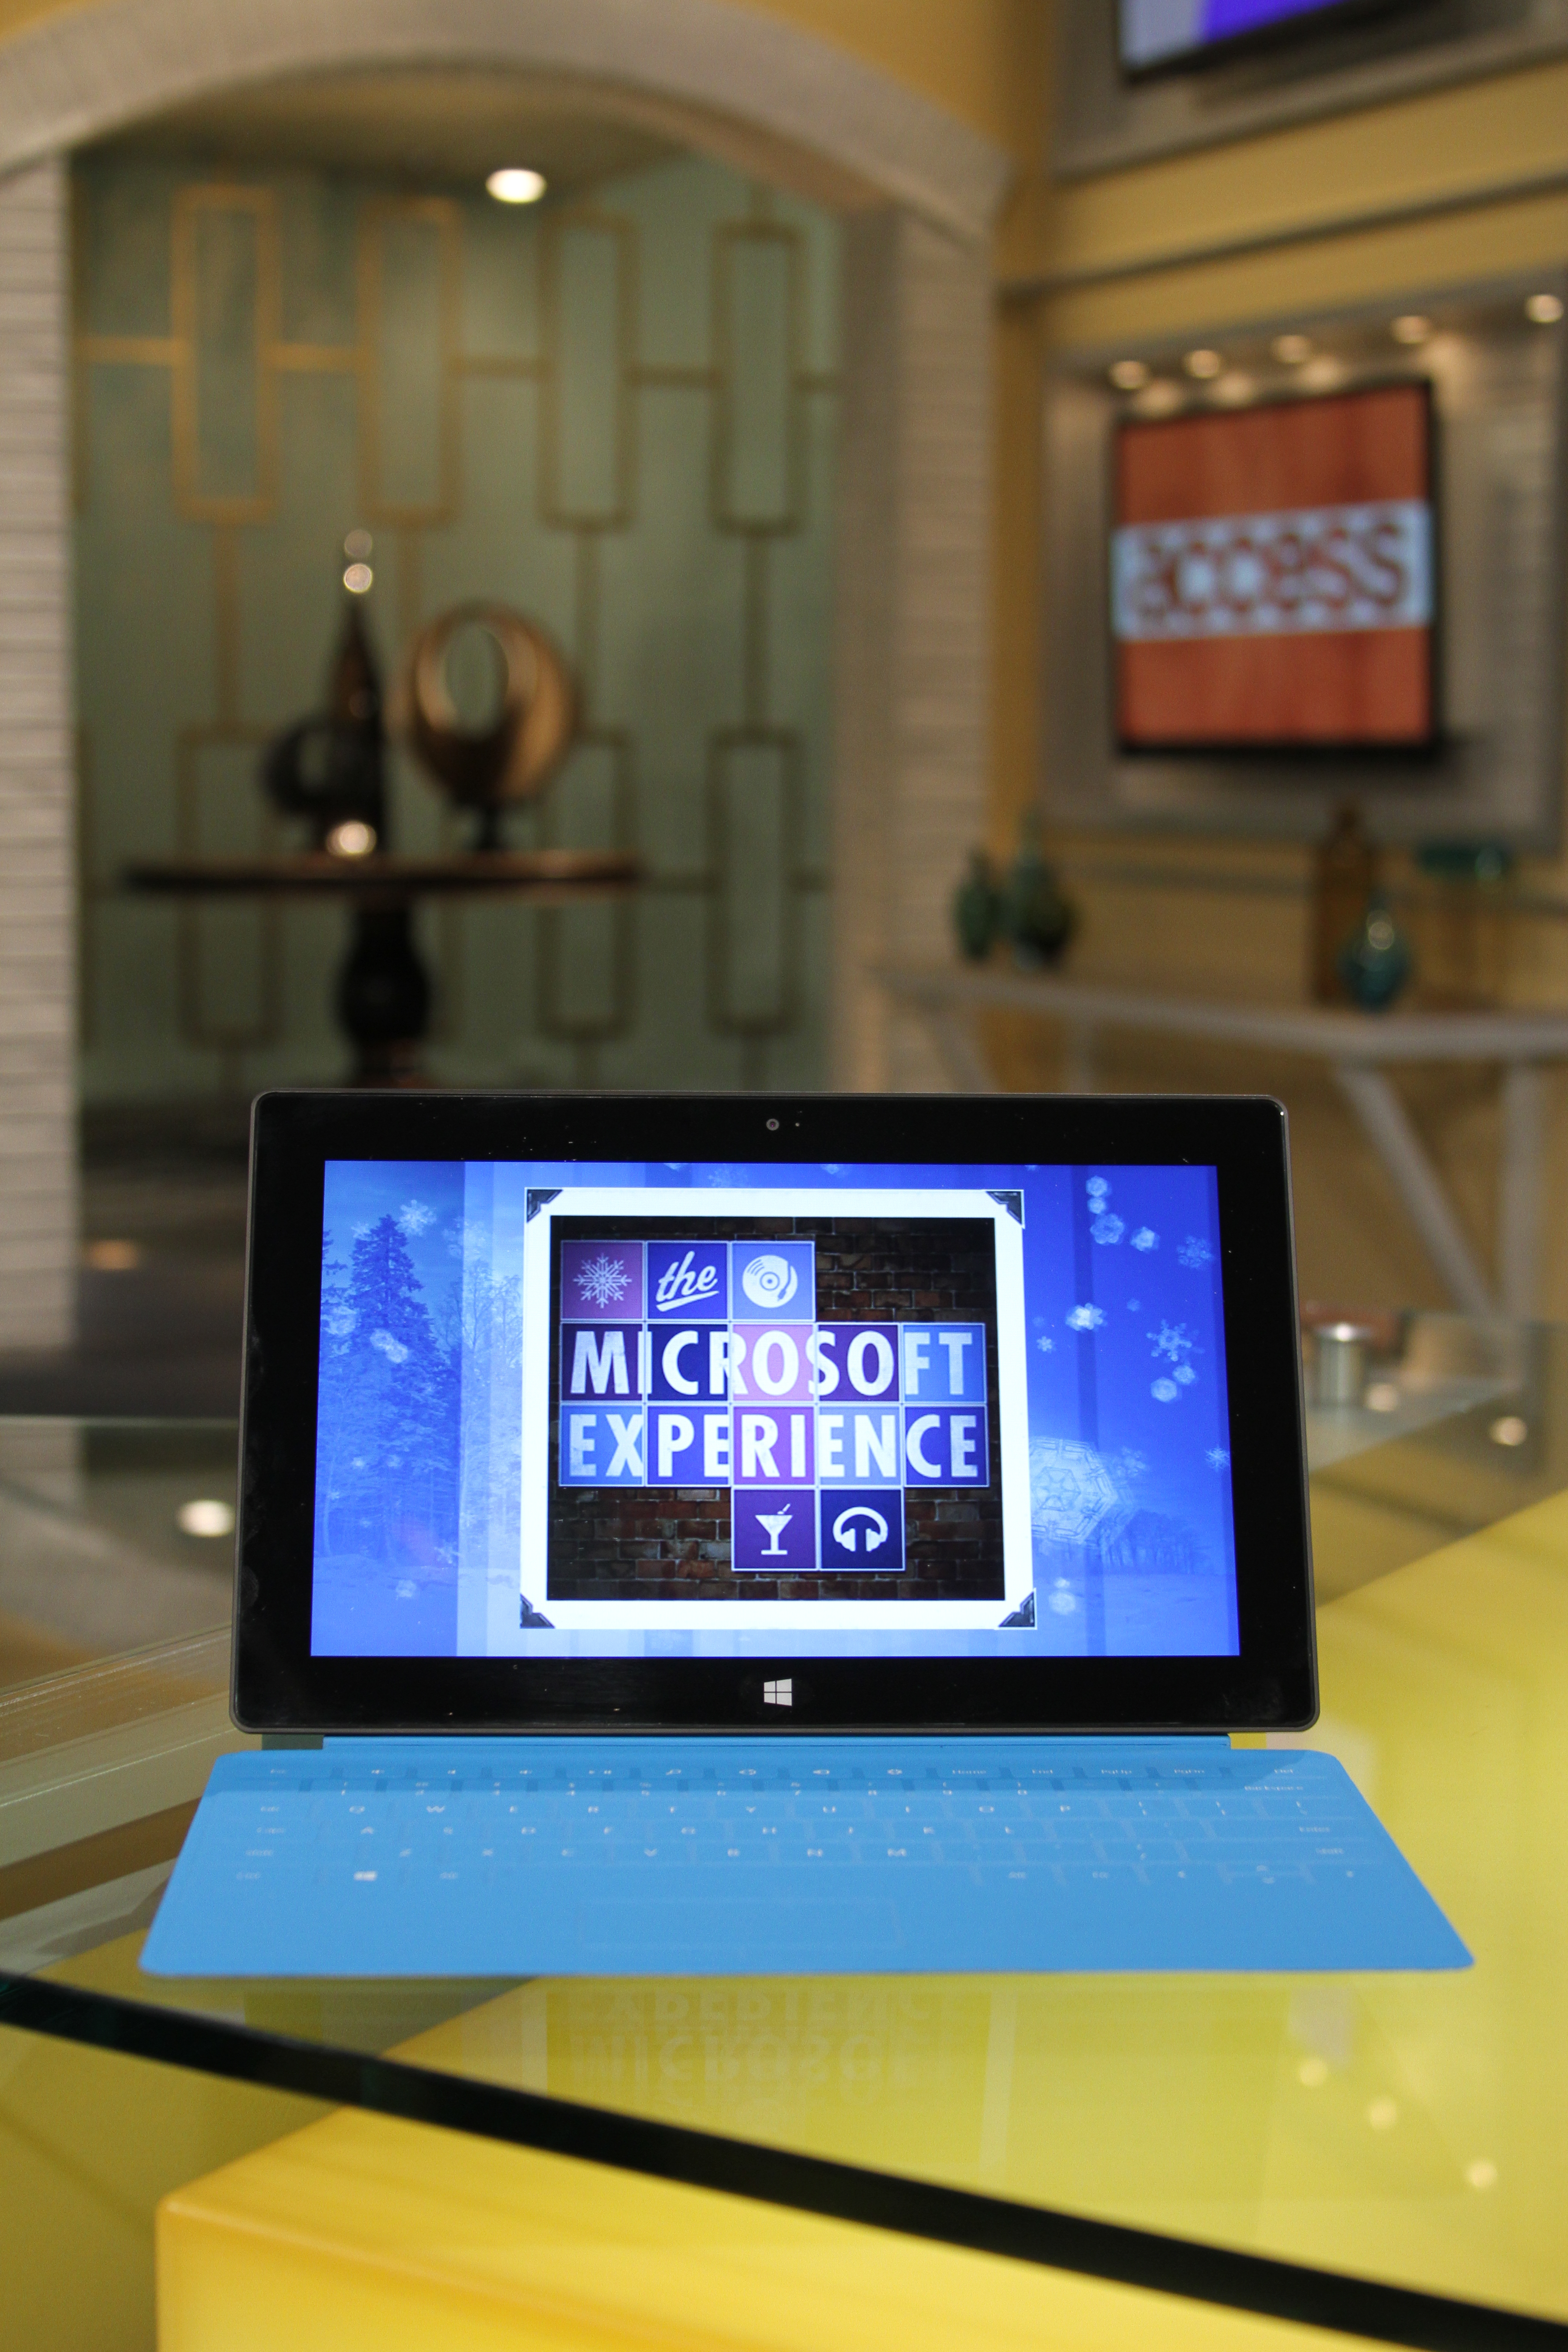 Access & Microsoft Team Up To Celebrate Windows 8 Launch | Access Online